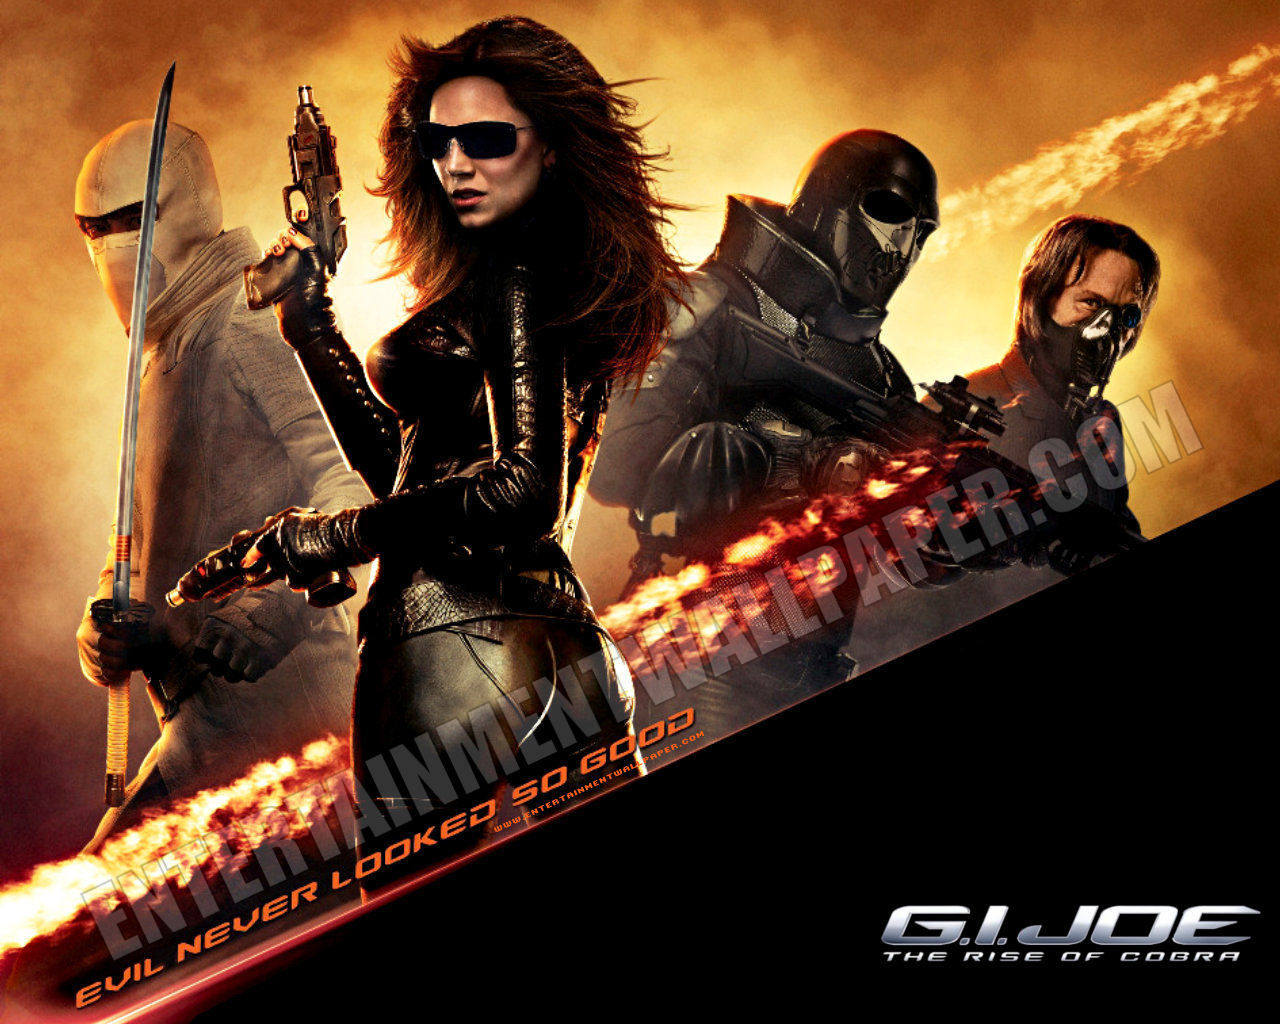 Joe The Rise of Cobra   GI Joe The Rise of Cobra Wallpaper 1280x1024